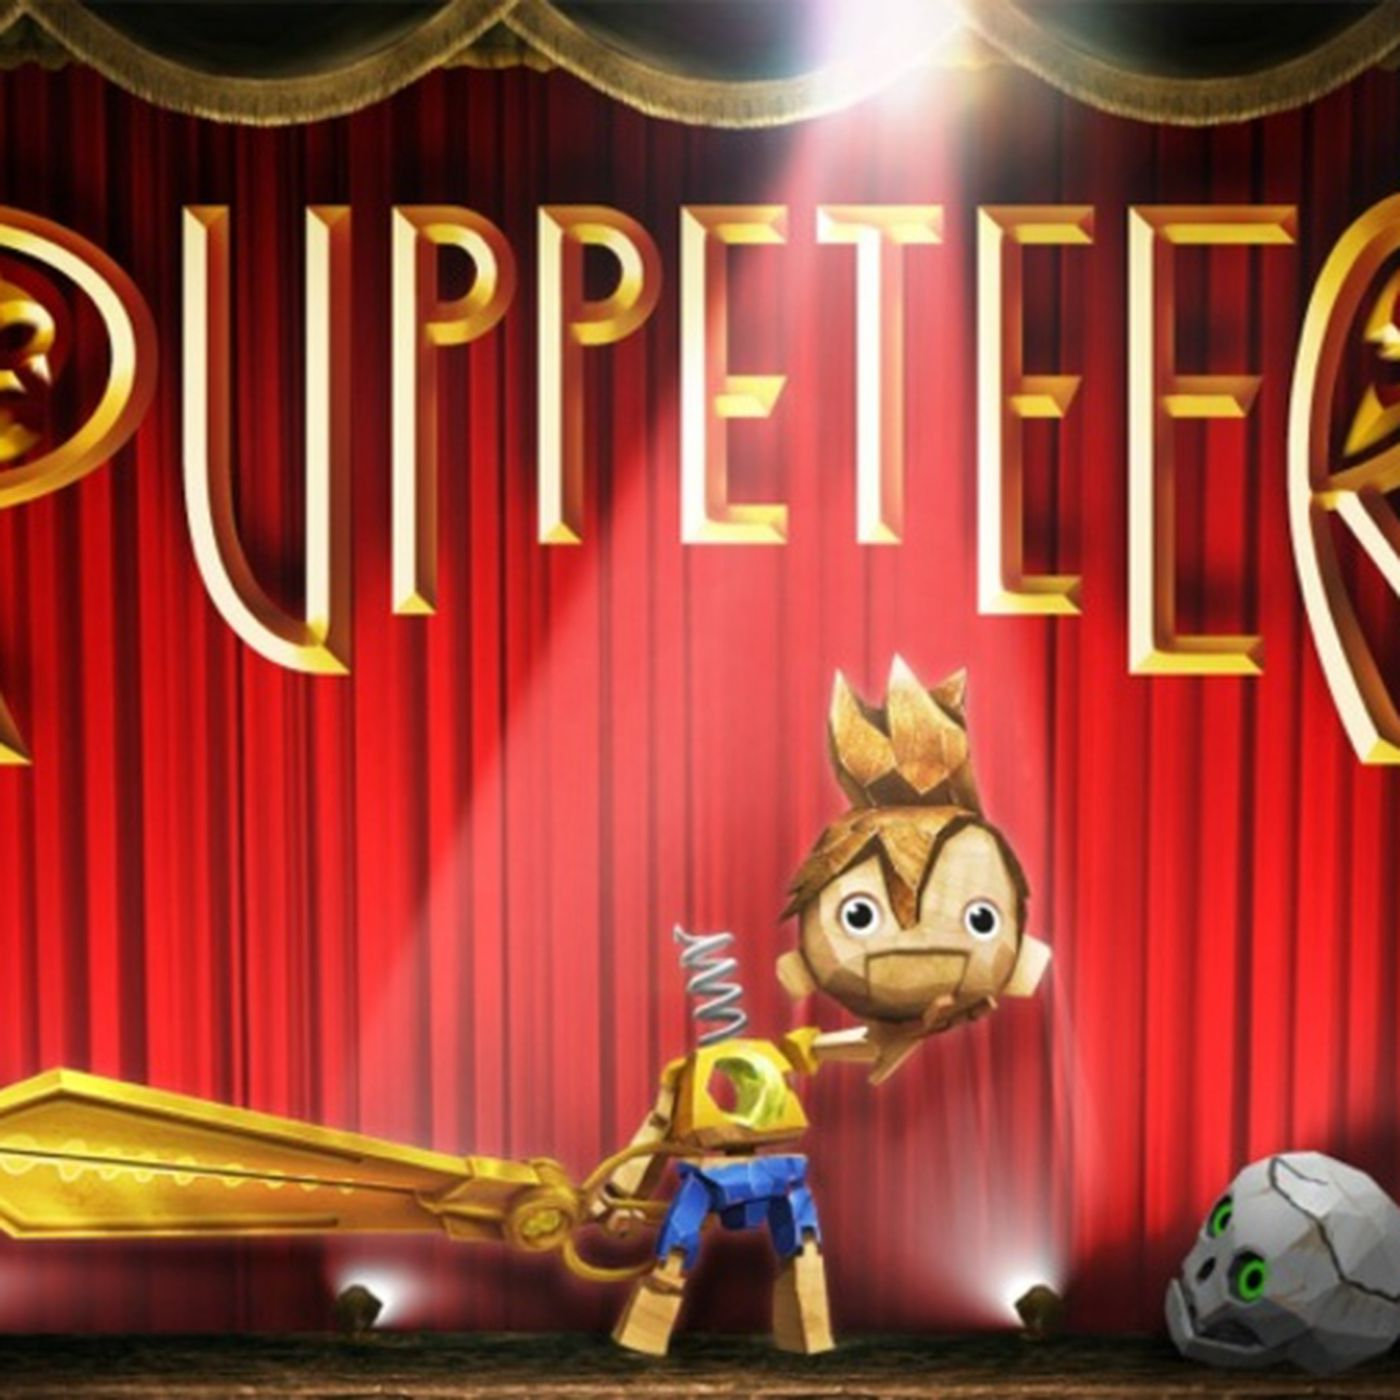 The manic world of 'Puppeteer' demands your attention - The